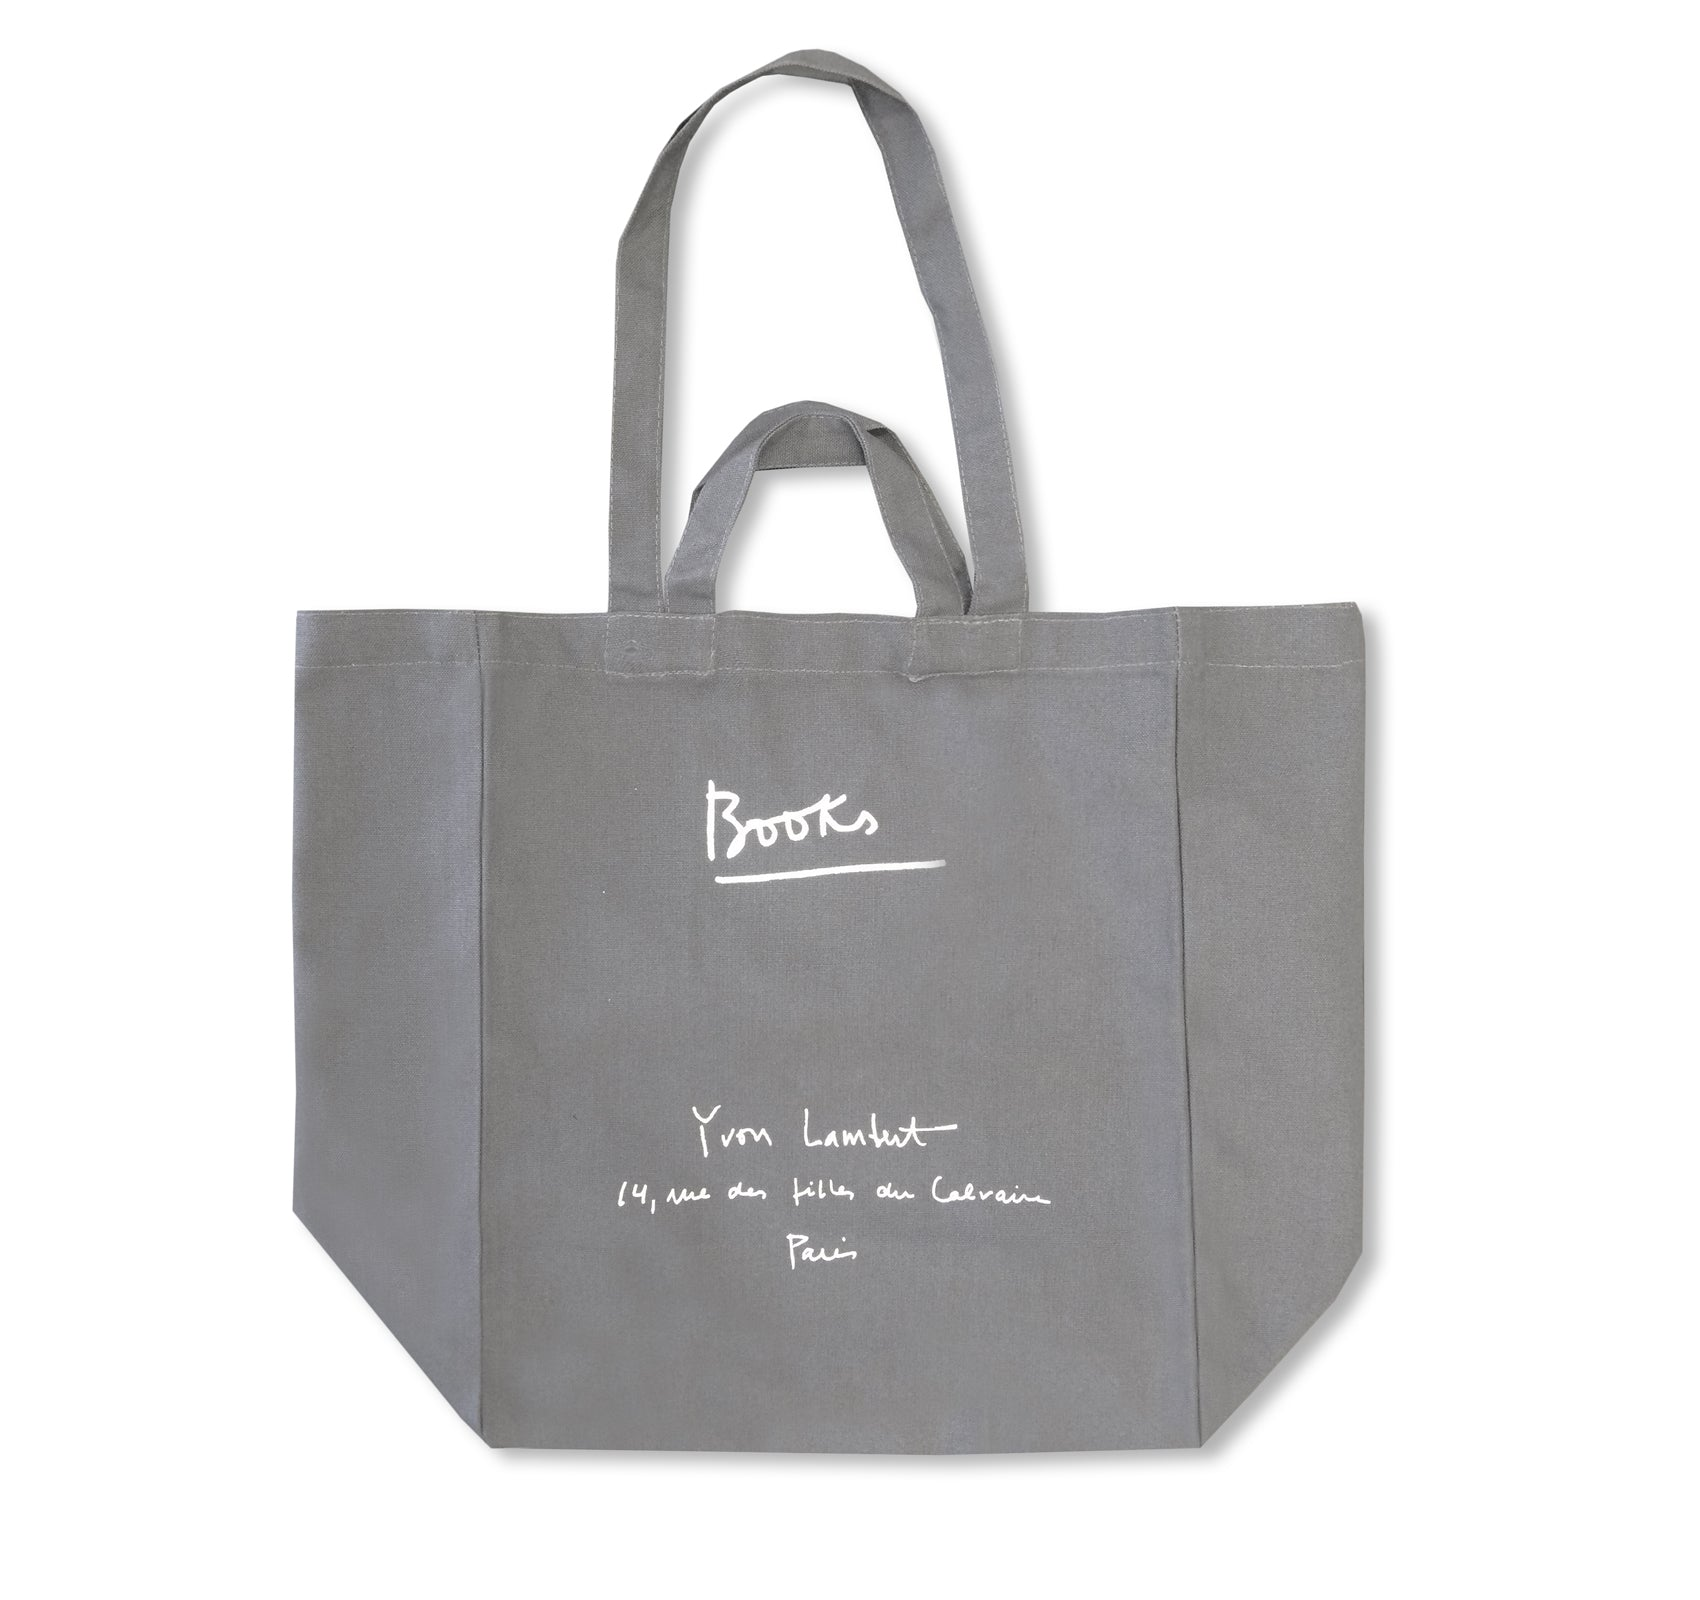 YVON LAMBERT TOTE BAG (LARGE / DARK GREY)